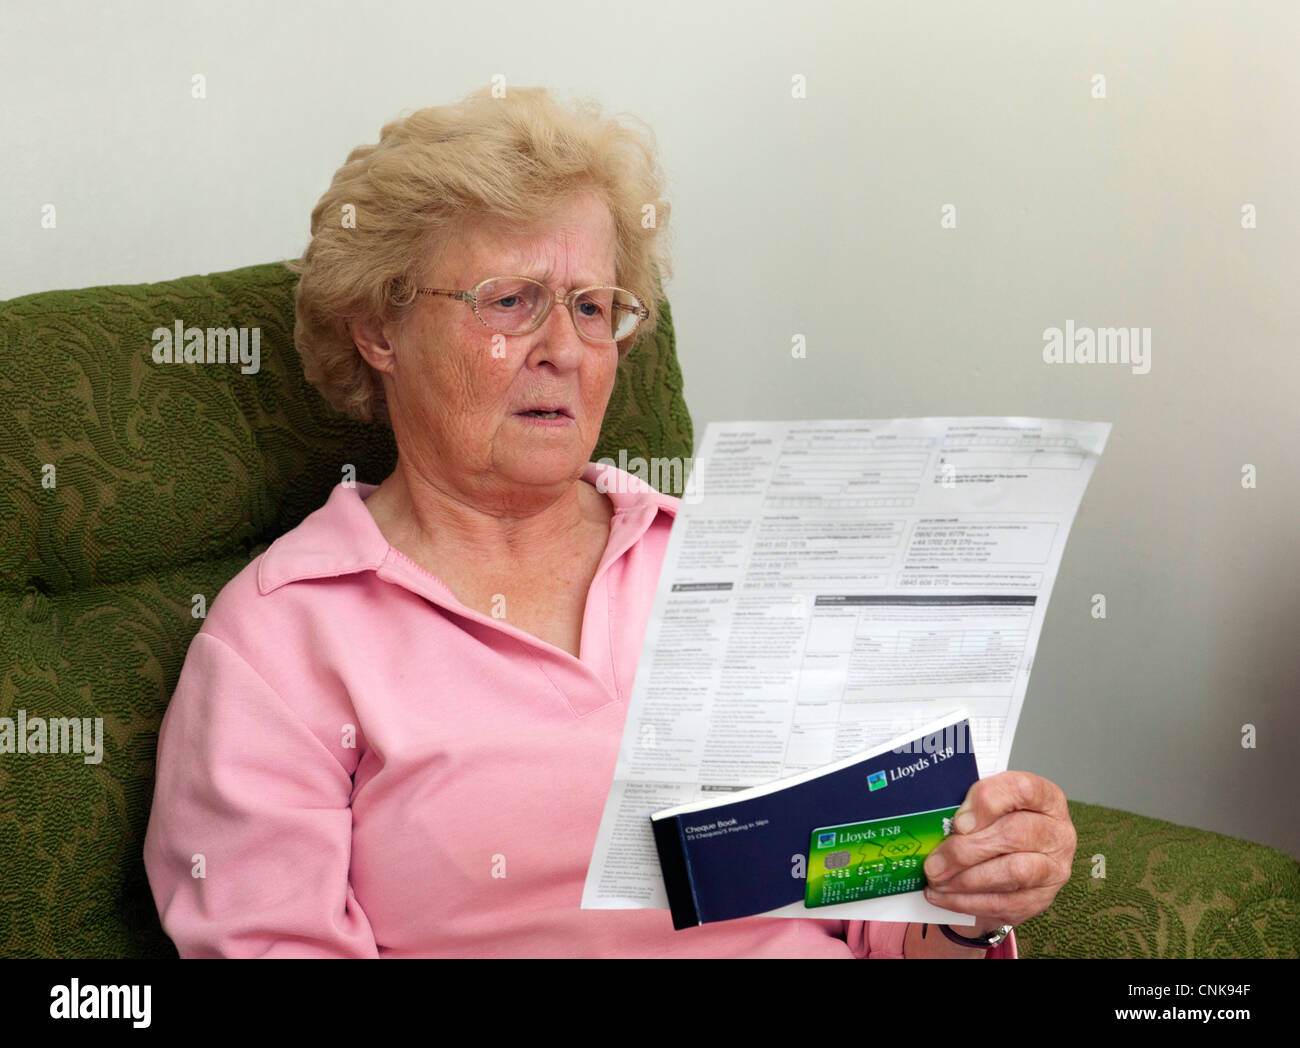 senior woman / pensioner shocked by credit card bill / bank statement - Stock Image